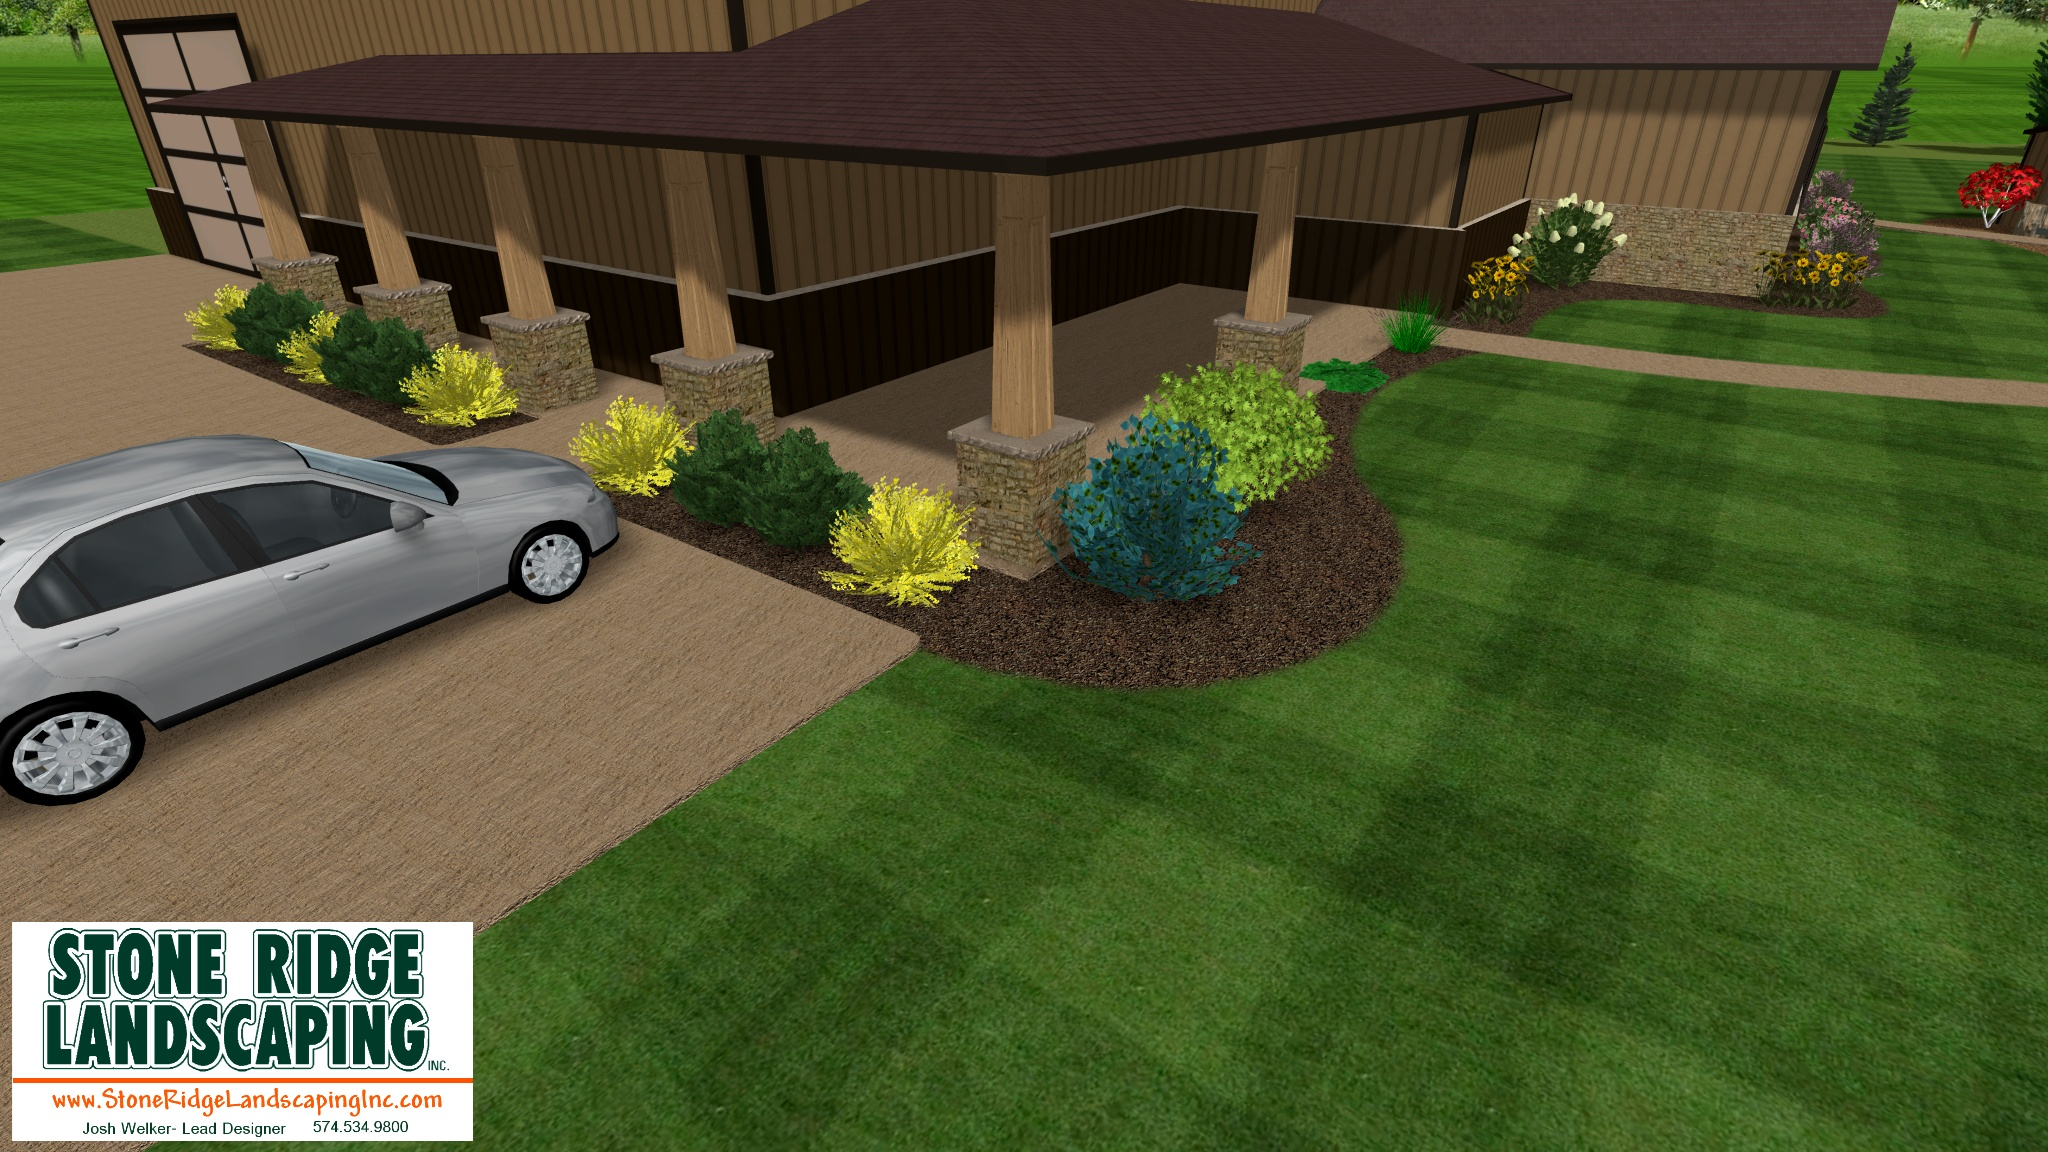 Landscape Design- Commercial